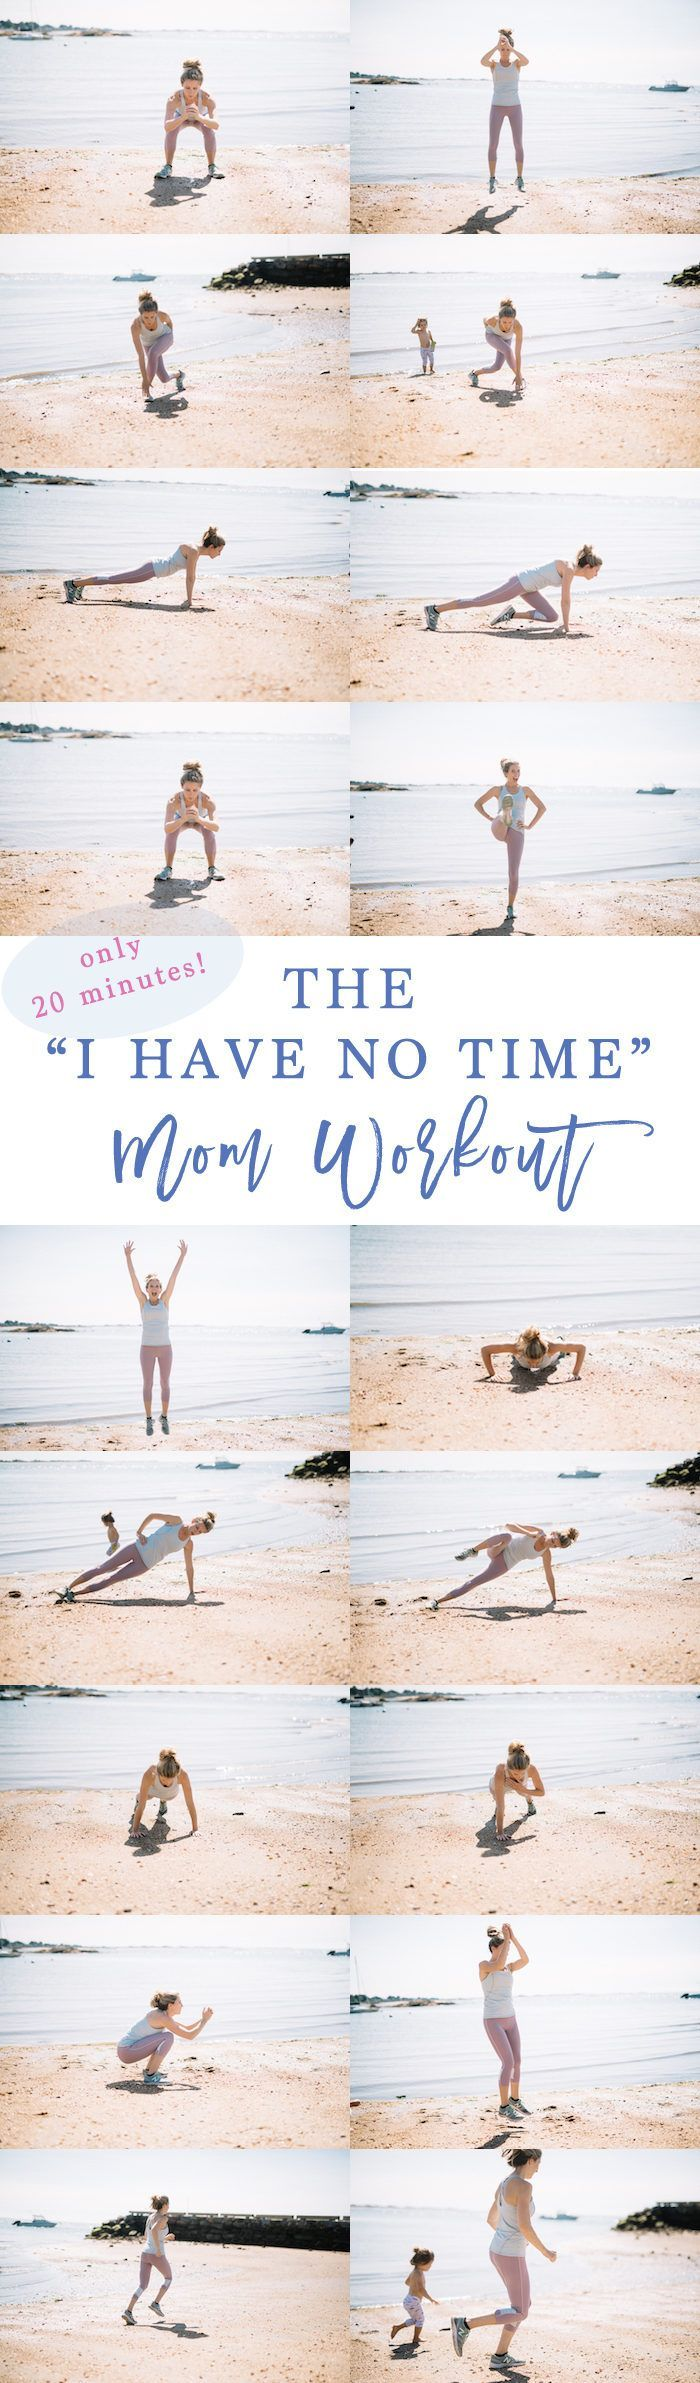 20 Minute Workout For Busy Moms Tabeta Workout Fit Mom 20 Minute Workout Mommy Workout